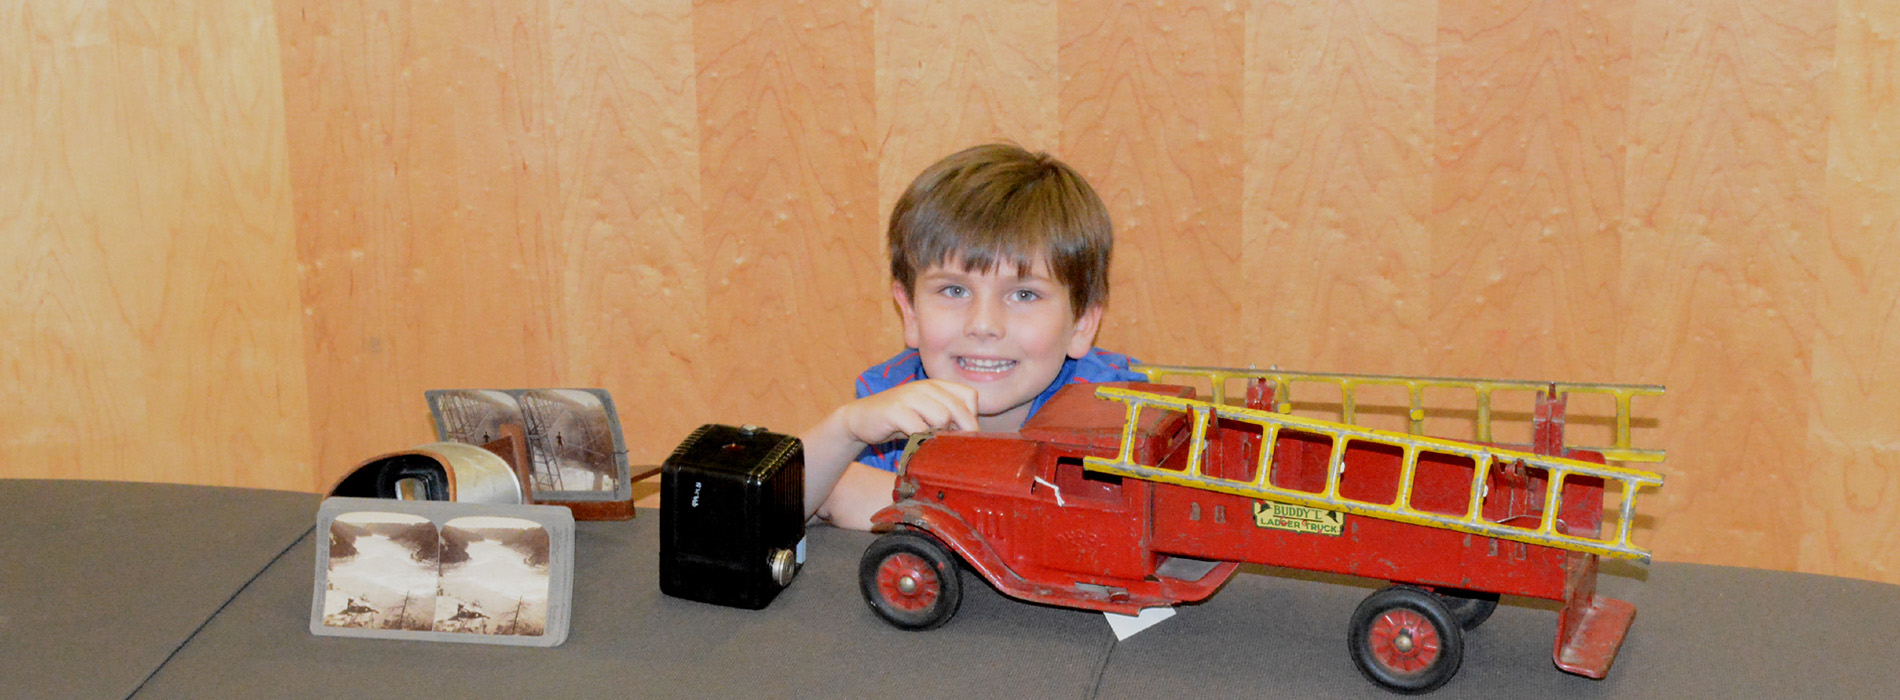 Child with Old Fire Engine